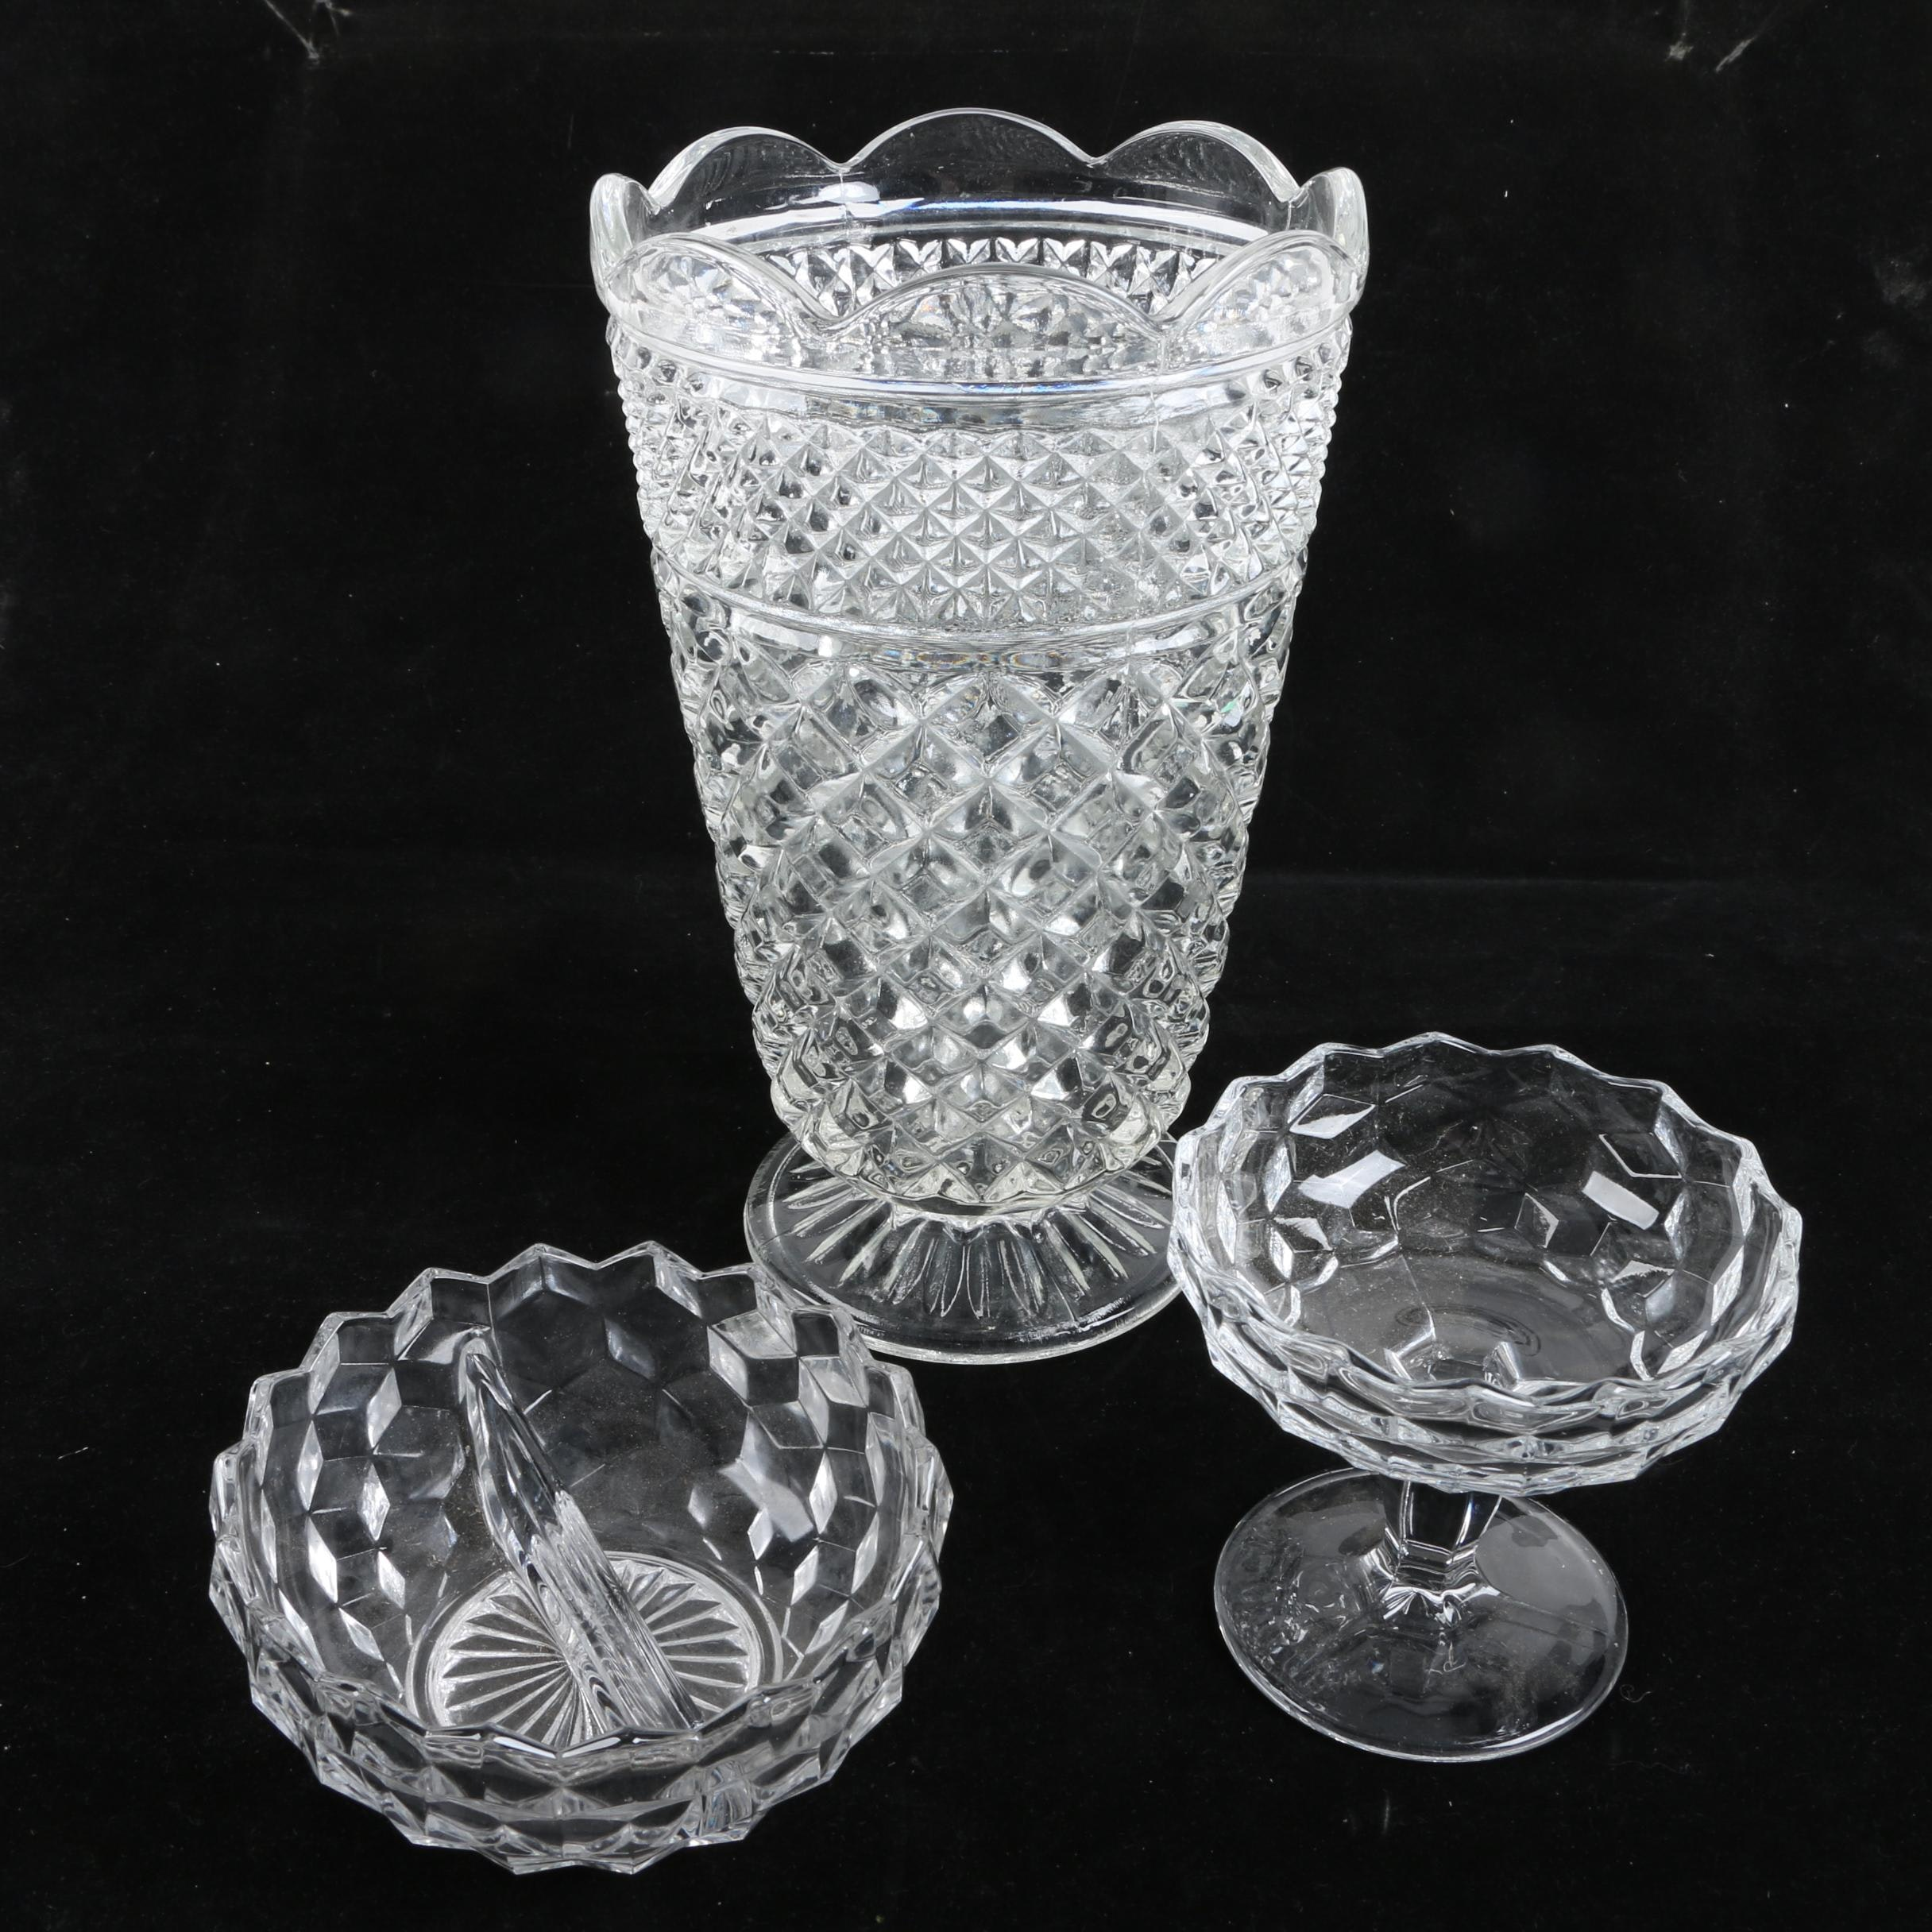 Crystal Tableware and Decor